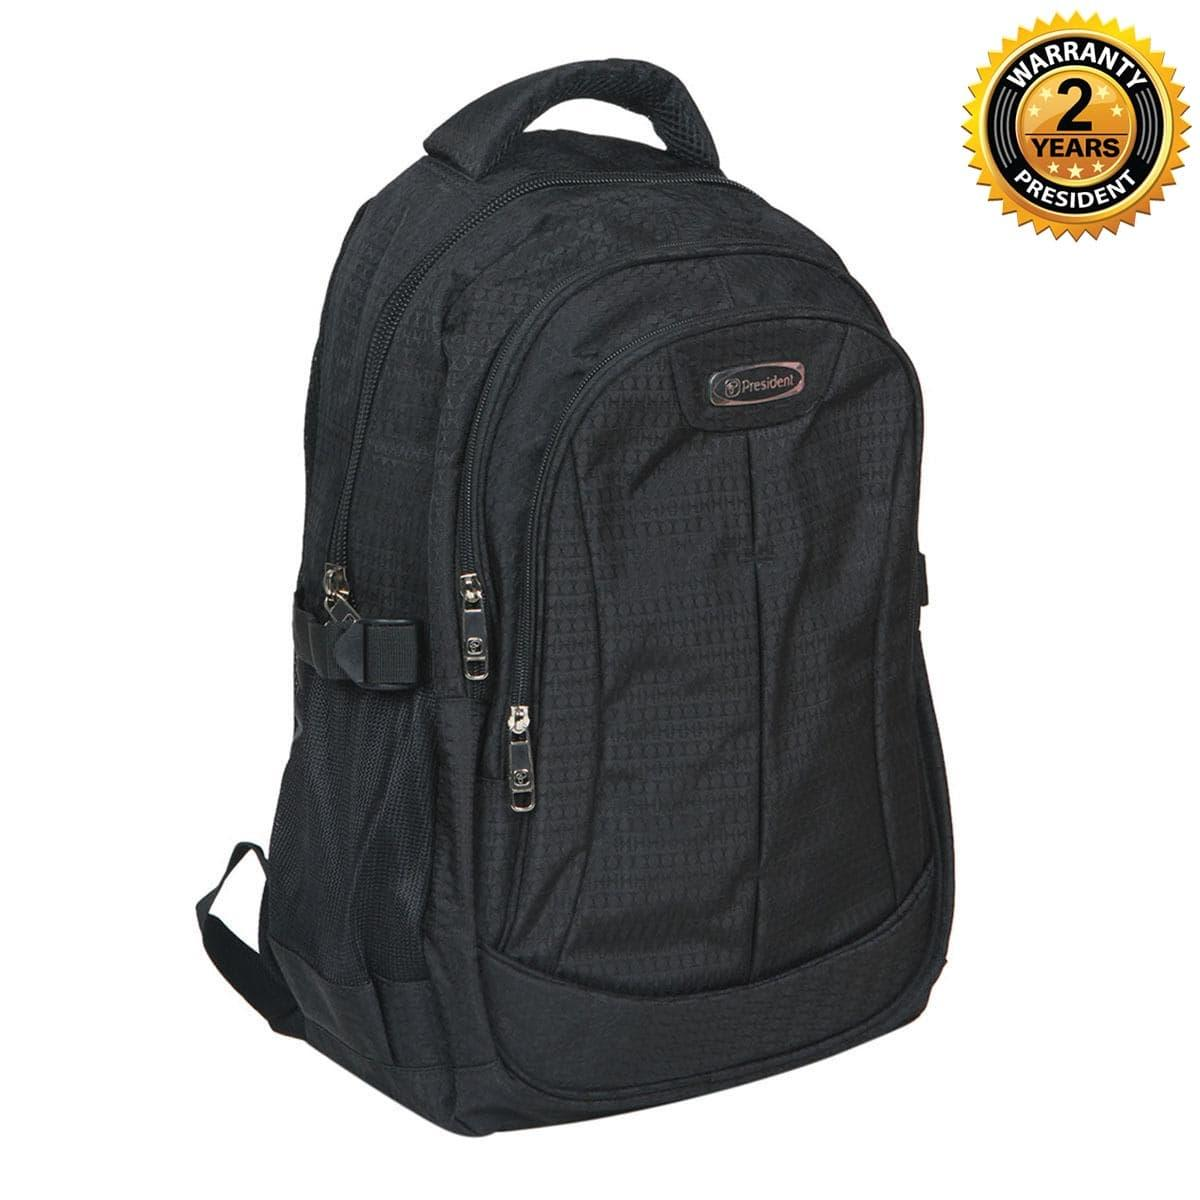 89d92fac6d8 President Backpack / School Bag / Shoulder Bag for Men 18